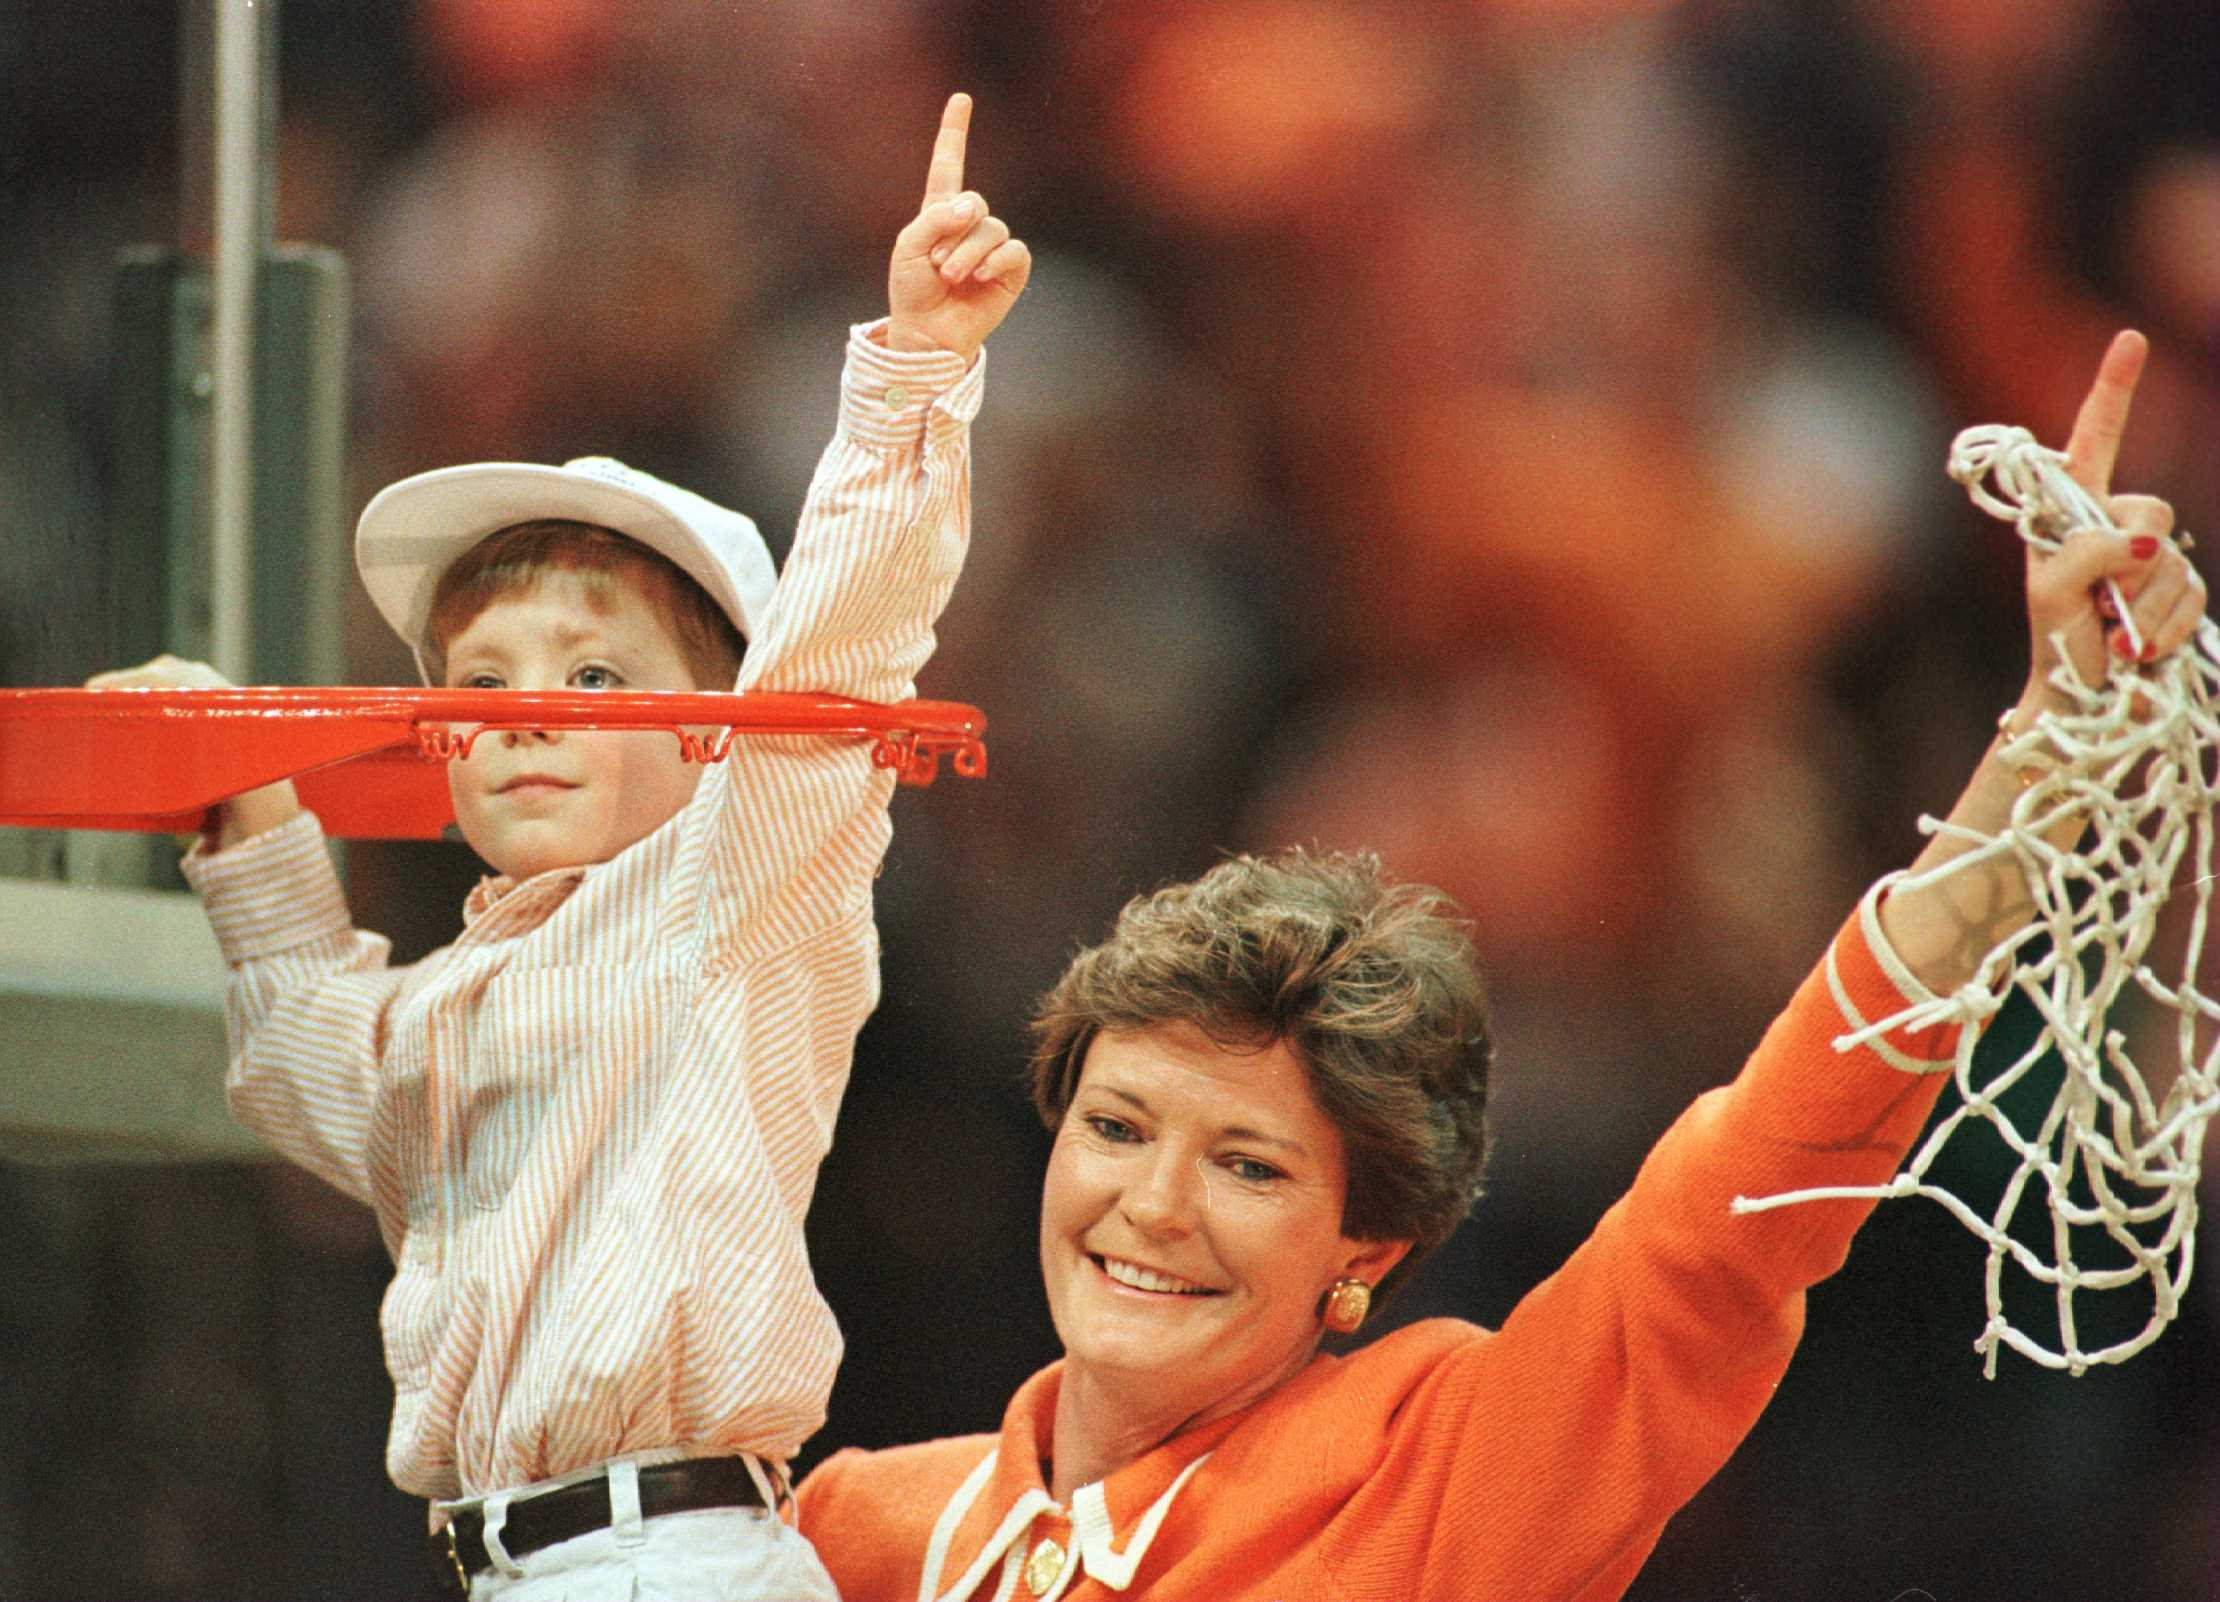 Pat Summitt in 1996 with her son, Tyler. (Getty)